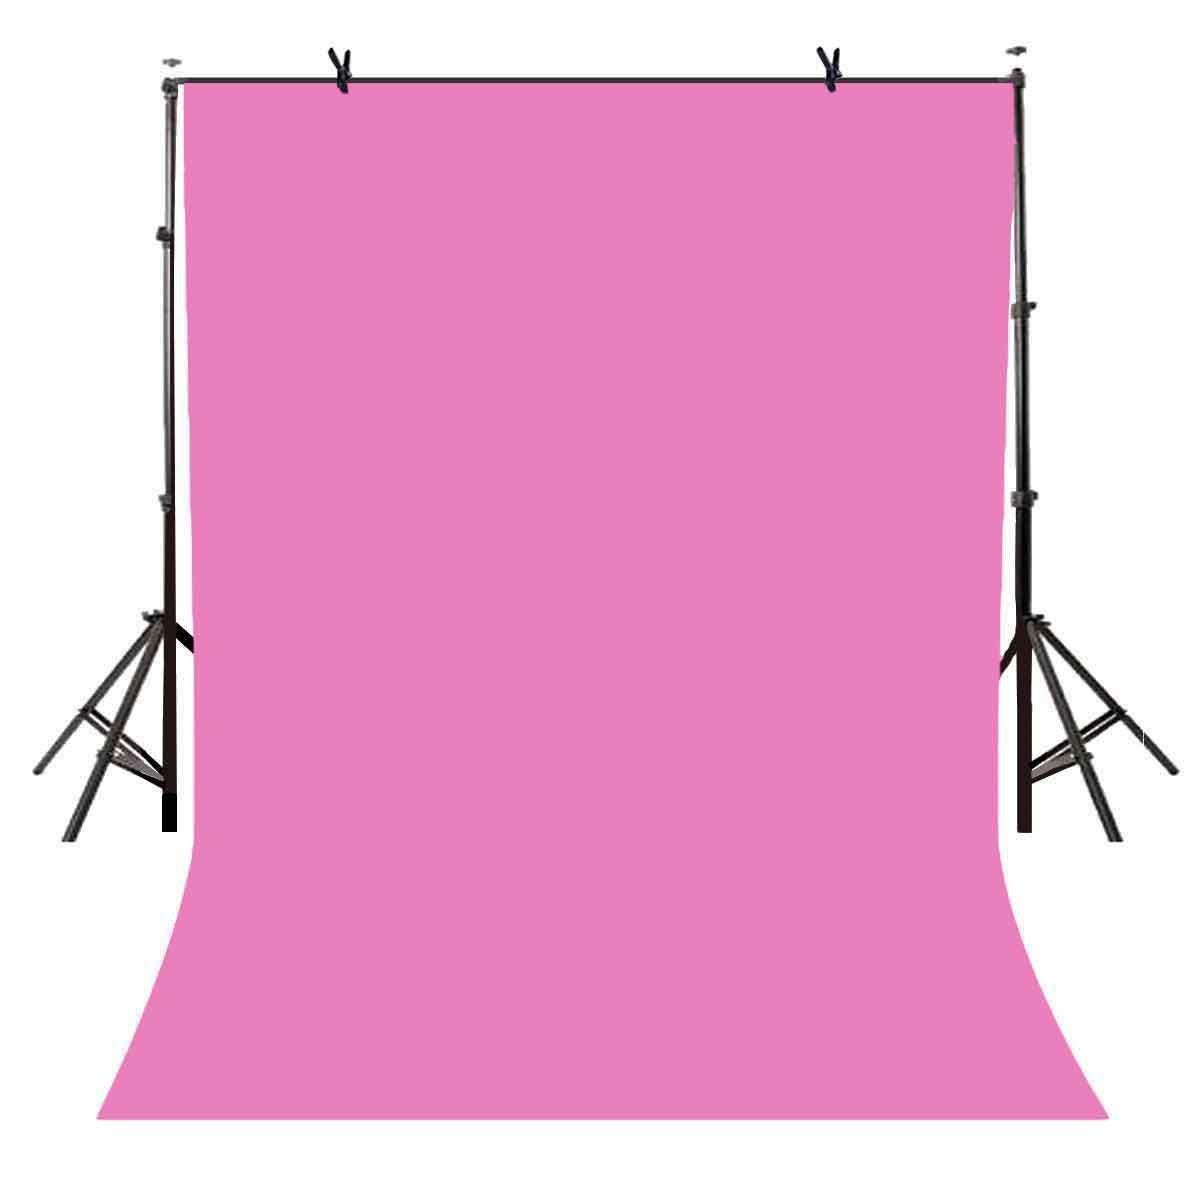 LYLYCTY 5x7ft Photography Studio Non-woven Backdrop Millennium Pink Backdrop Solid Color Backdrop Simple Background LY091